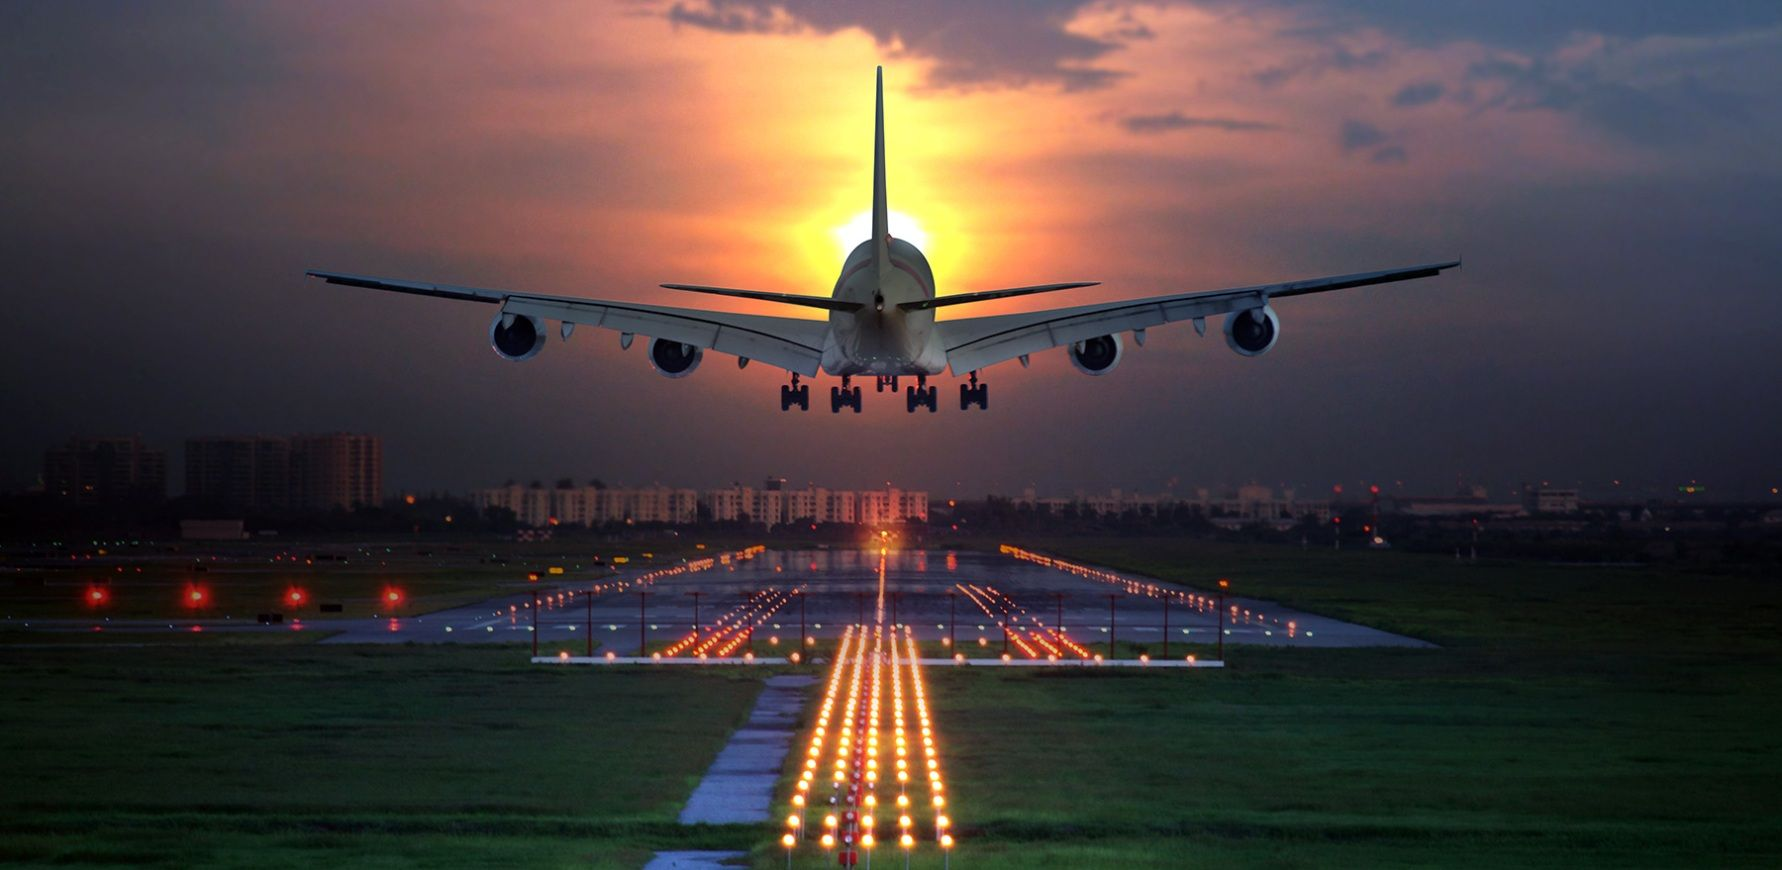 Airplane Landing Airport Sunset Time Wallpapers 1782x870